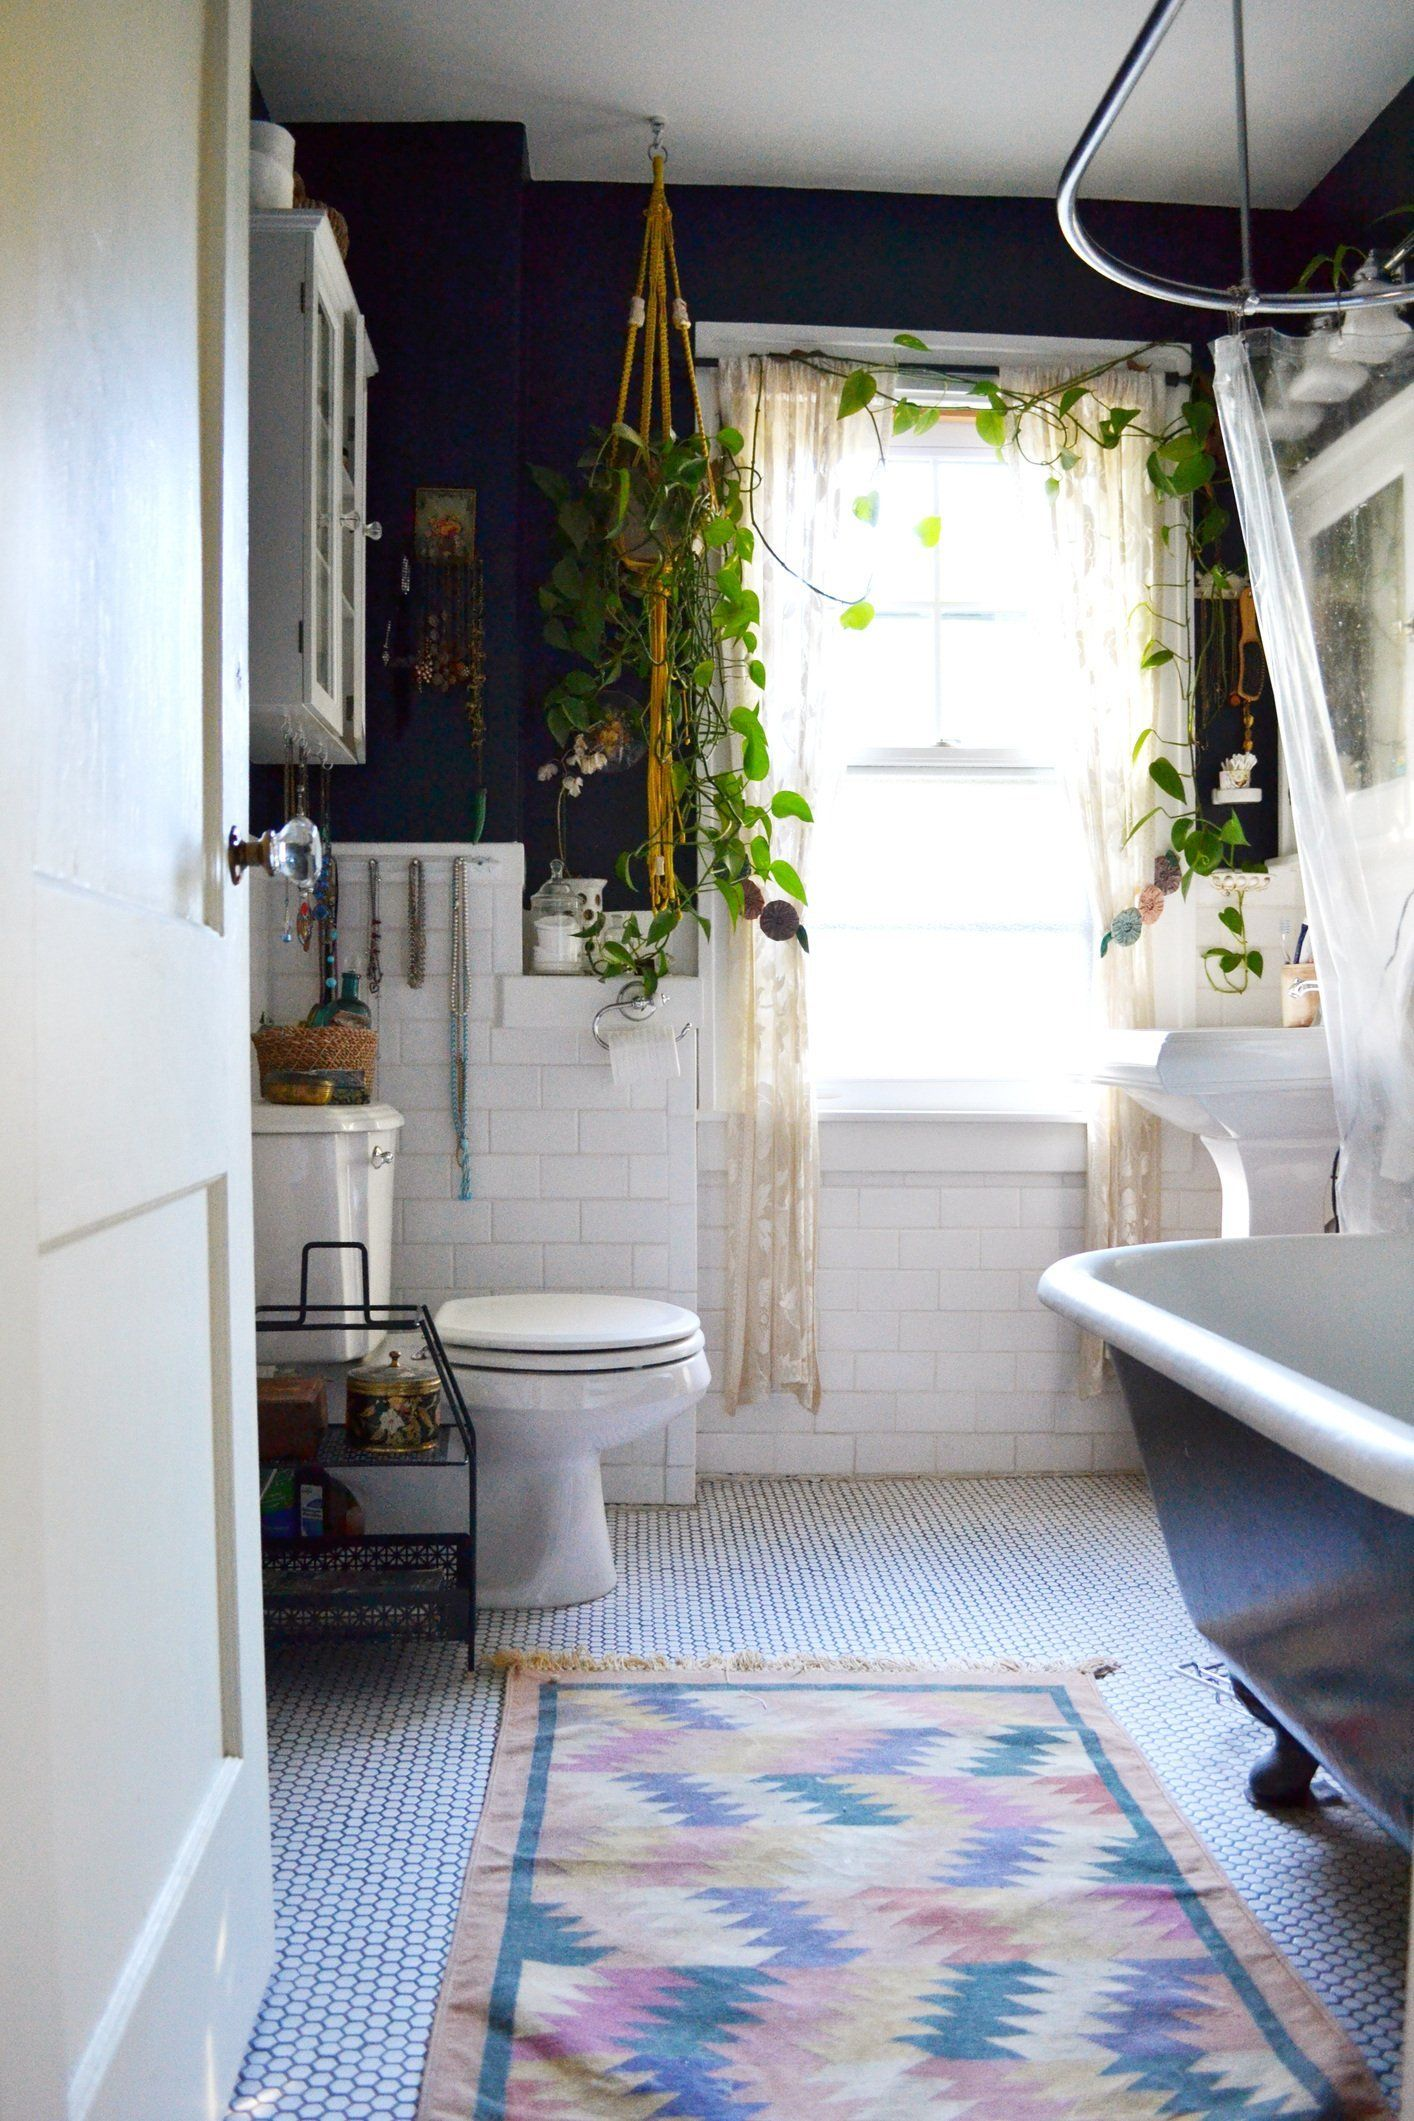 Plants in the Bathroom: Inspiration from Our House Tours